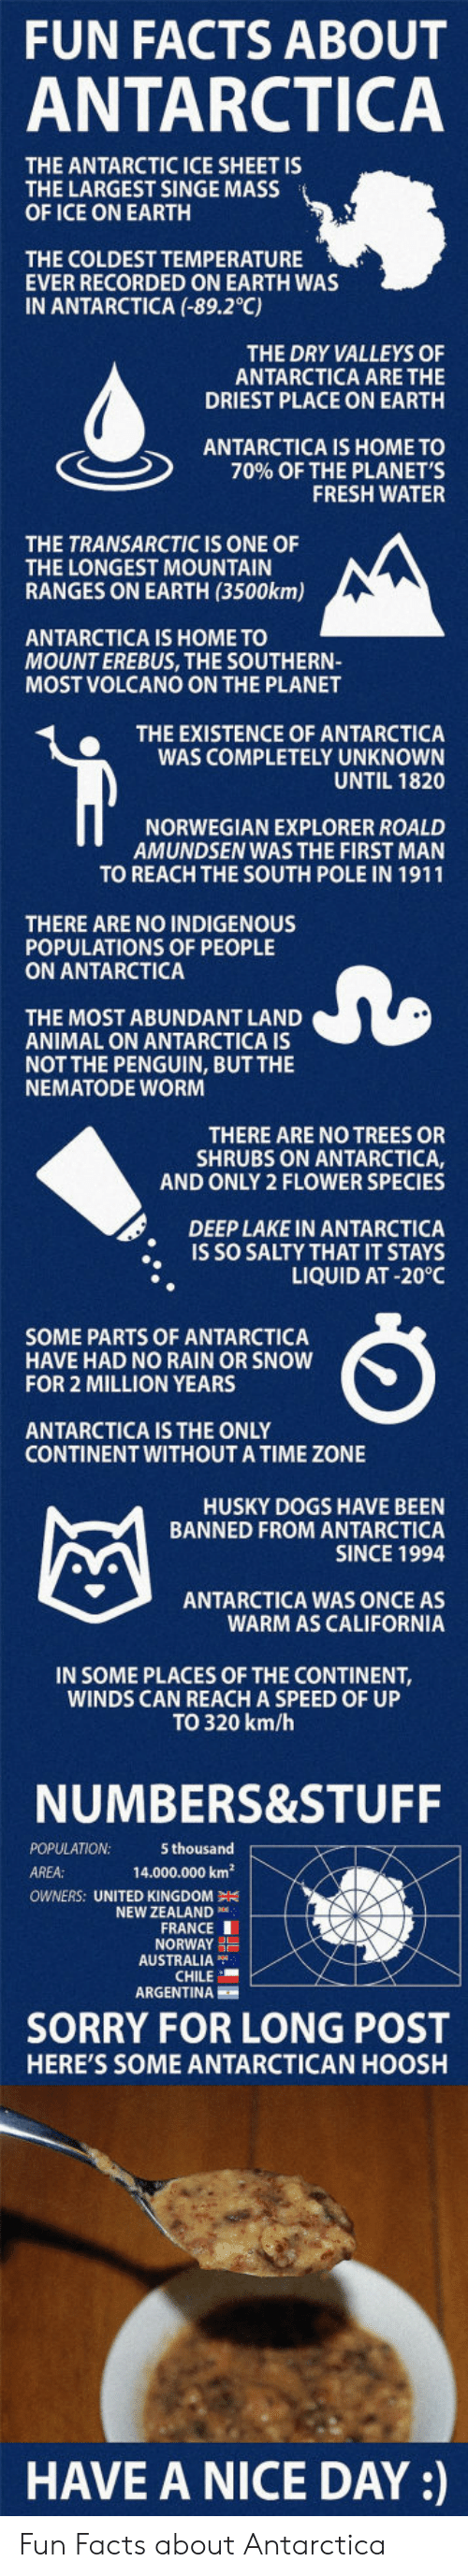 Dogs, Facts, and Fresh: FUN FACTS ABOUT  ANTARCTICA  THE ANTARCTIC ICE SHEET IS  THE LARGEST SINGE MASS  OF ICE ON EARTH  THE COLDEST TEMPERATURE  EVER RECORDED ON EARTH WAS  IN ANTARCTICA (-89.2°C)  THE DRY VALLEYS OF  ANTARCTICA ARE THE  DRIEST PLACE ON EARTH  ANTARCTICA IS HOME TO  70% OF THE PLANET'S  FRESH WATER  THE TRANSARCTIC IS ONE OF  THE LONGEST MOUNTAIN  RANGES ON EARTH (3500km)  ANTARCTICA IS HOME TO  MOUNT EREBUS, THE SOUTHERN-  MOST VOLCANO ON THE PLANET  THE EXISTENCE OF ANTARCTICA  WAS COMPLETELY UNKNOWN  UNTIL 1820  NORWEGIAN EXPLORER ROALD  AMUNDSEN WAS THE FIRST MAN  TO REACH THE SOUTH POLE IN 1911  THERE ARE NO INDIGENOUS  POPULATIONS OF PEOPLE  ON ANTARCTICA  THE MOST ABUNDANT LAND  ANIMAL ON ANTARCTICA IS  NOT THE PENGUIN, BUT THE  NEMATODE WOR  THERE ARE NO TREES OR  SHRUBS ON ANTARCTICA,  AND ONLY 2 FLOWER SPECIES  DEEP LAKE IN ANTARCTICA  IS SO SALTY THAT IT STAYS  LIQUID AT -20°C  SOME PARTS OF ANTARCTICA  HAVE HAD NO RAIN OR SNOW  FOR 2 MILLION YEARS  ANTARCTICA IS THE ONLY  CONTINENT WITHOUTA TIME ZONE  HUSKY DOGS HAVE BEEN  BANNED FROM ANTARCTICA  SINCE 1994  ANTARCTICA WAS ONCE AS  WARM AS CALIFORNIA  IN SOME PLACES OF THE CONTINENT,  WINDS CAN REACH A SPEED OF UP  TO 320 km/h  NUMBERS&STUFF  POPULATION  AREA:  5 thousand  14.000.000 km2  OWNERS: UNITED KINGDOM  NEW ZEALAND  FRANCE I  NORWAY  AUSTRALIA  CHILE  ARGENTINA  SORRY FOR LONG POST  HERE'S SOME ANTARCTICAN HOOSH  HAVE A NICE DAY: Fun Facts about Antarctica